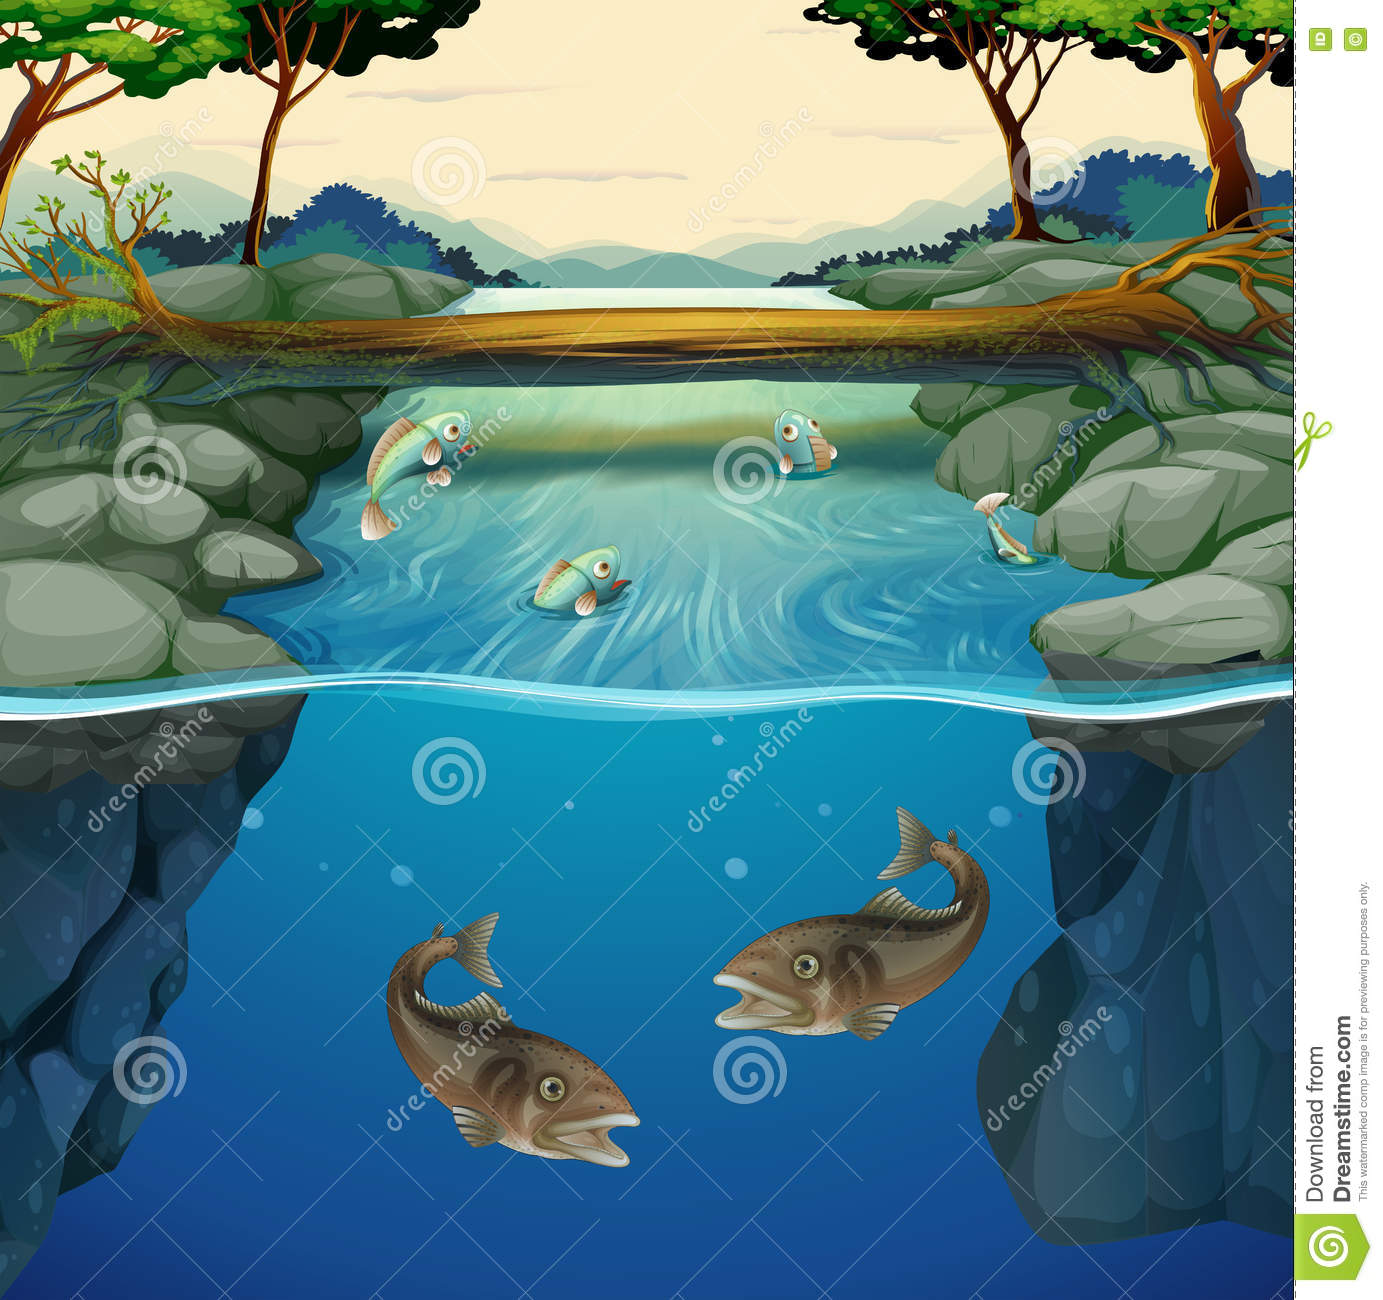 Fish swimming in the river stock vector image 73094024 for Dream of fish swimming